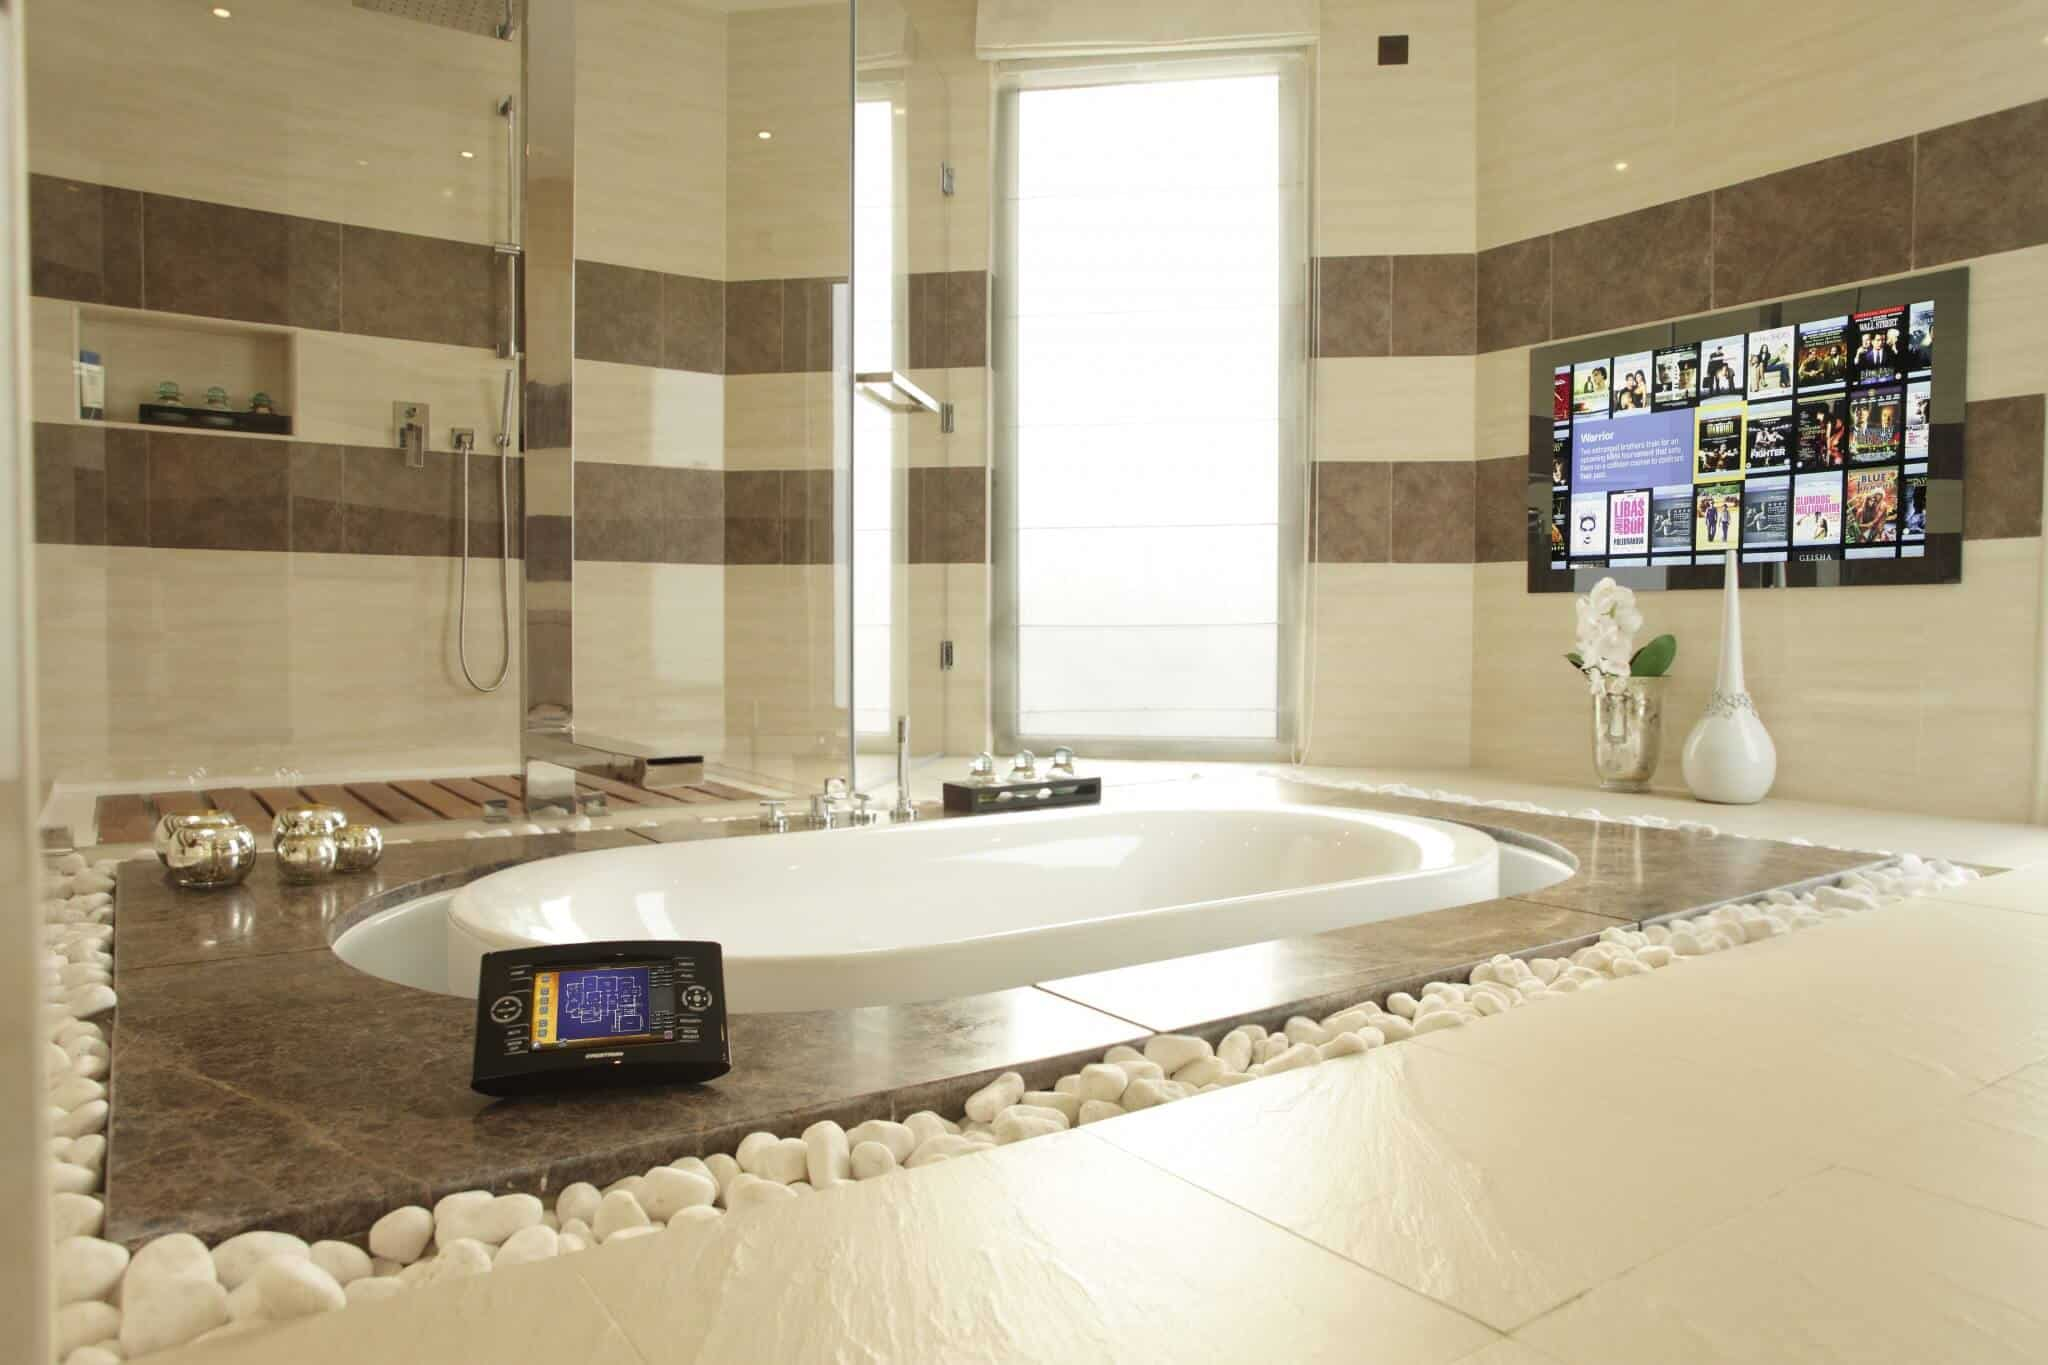 Bathroom showing Touchpanel Mirror TV - Crestron Dealers & Installers | London's Premier Crestron Dealers